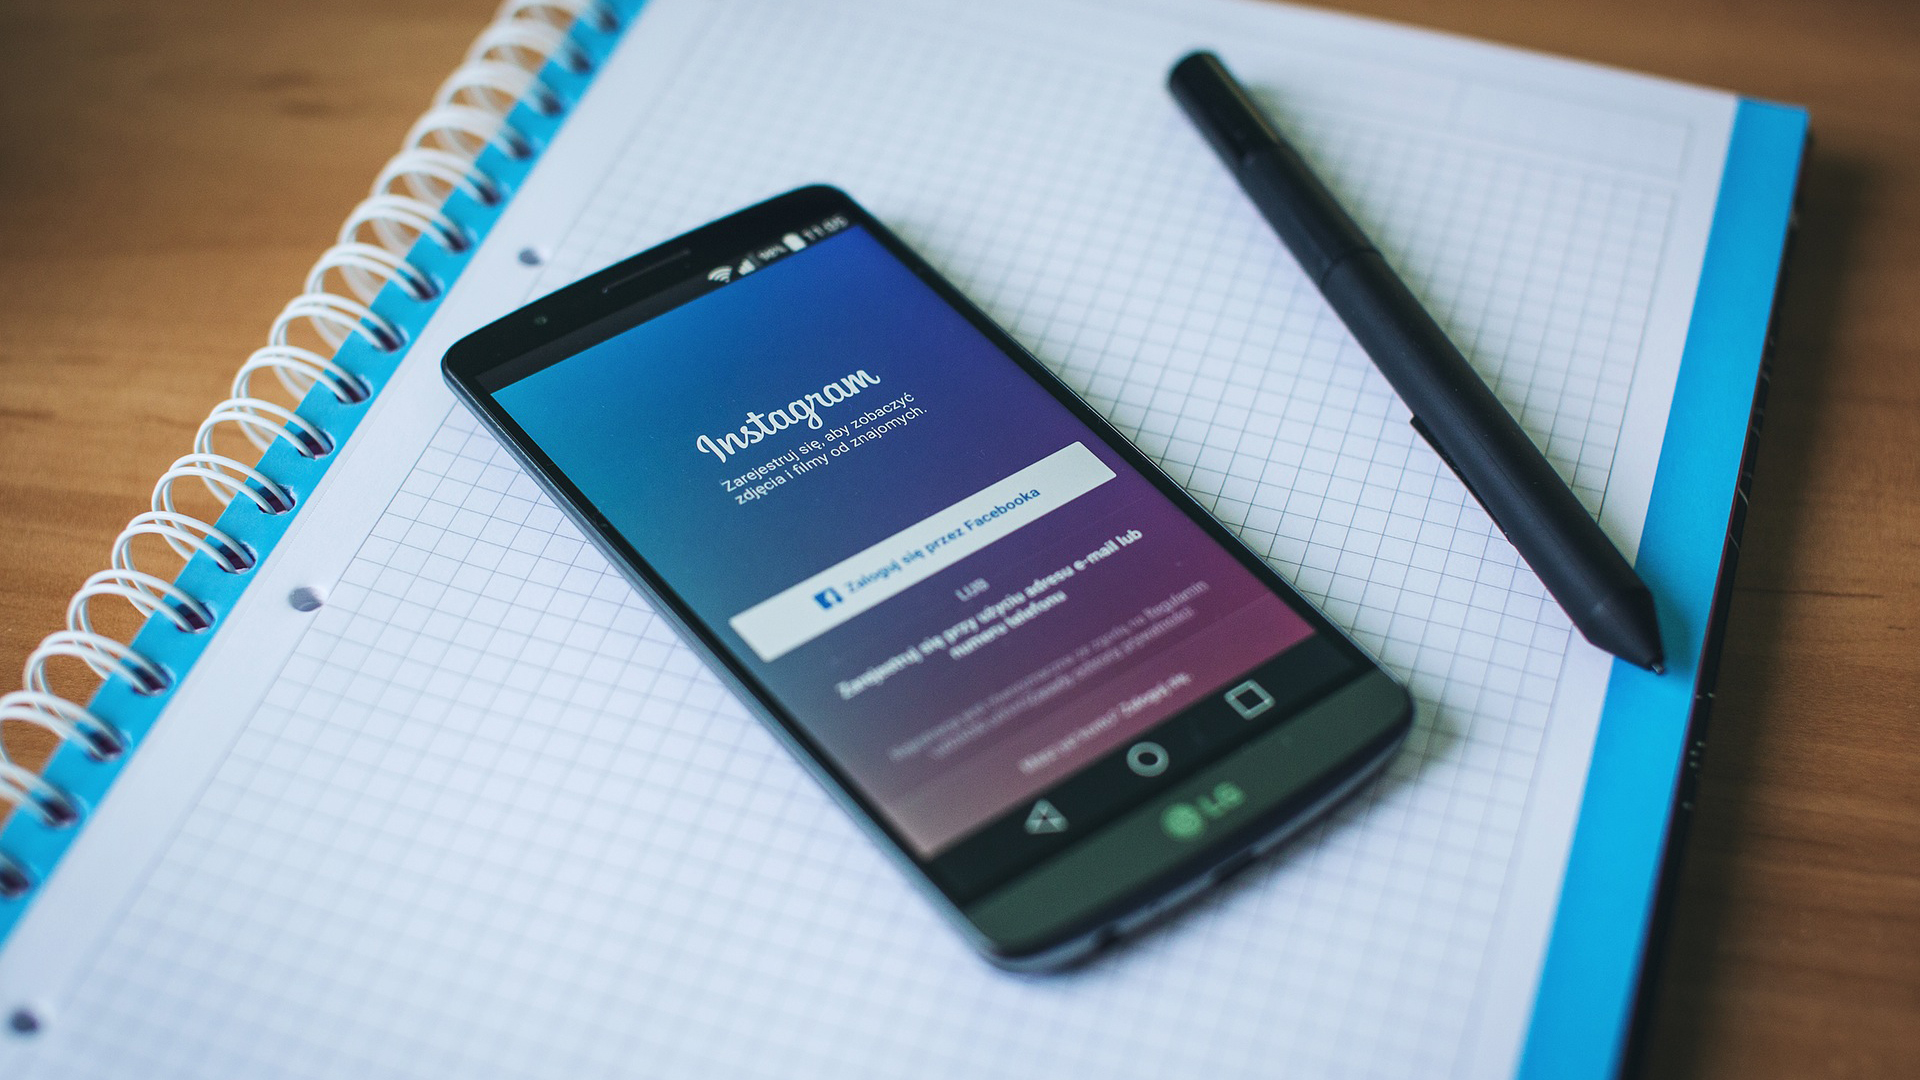 How To Change Your Instagram Email Instagramment Control On Phone